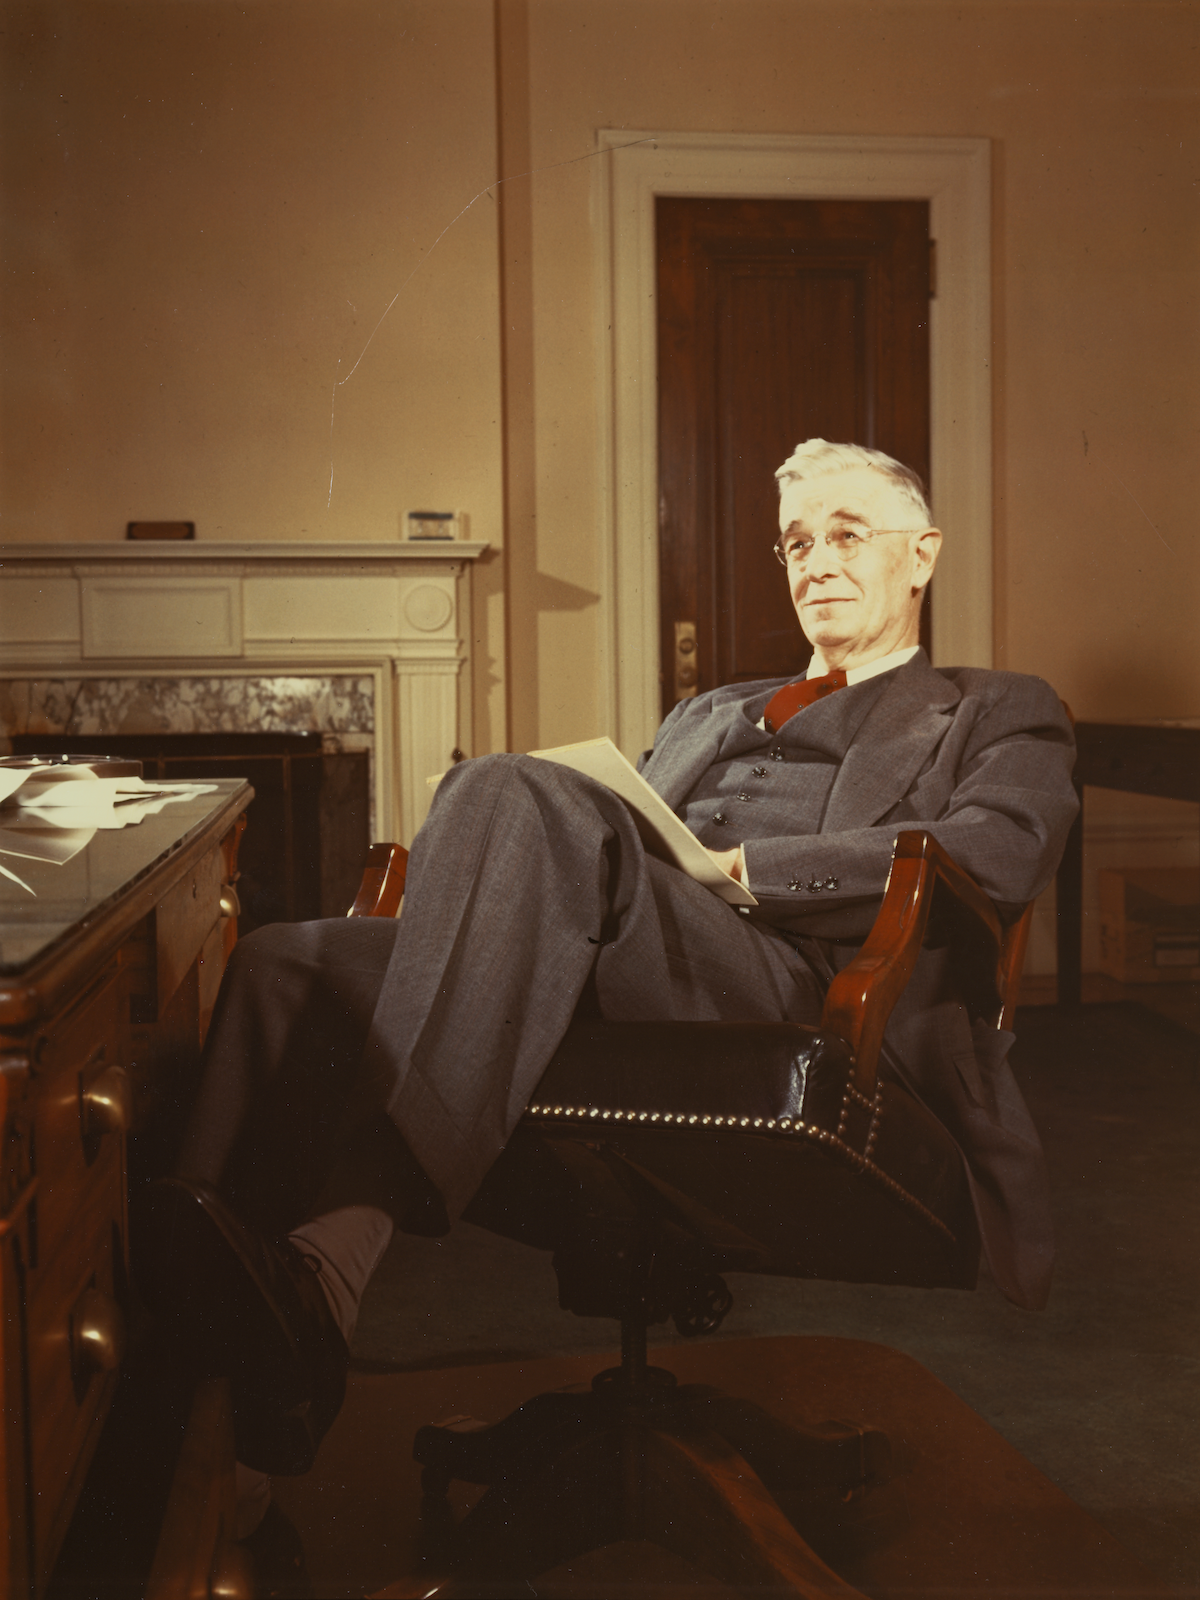 Vannevar Bush Photograph by Threshold Studio, Courtesy of Carnegie Institution for Science Administrative Archives